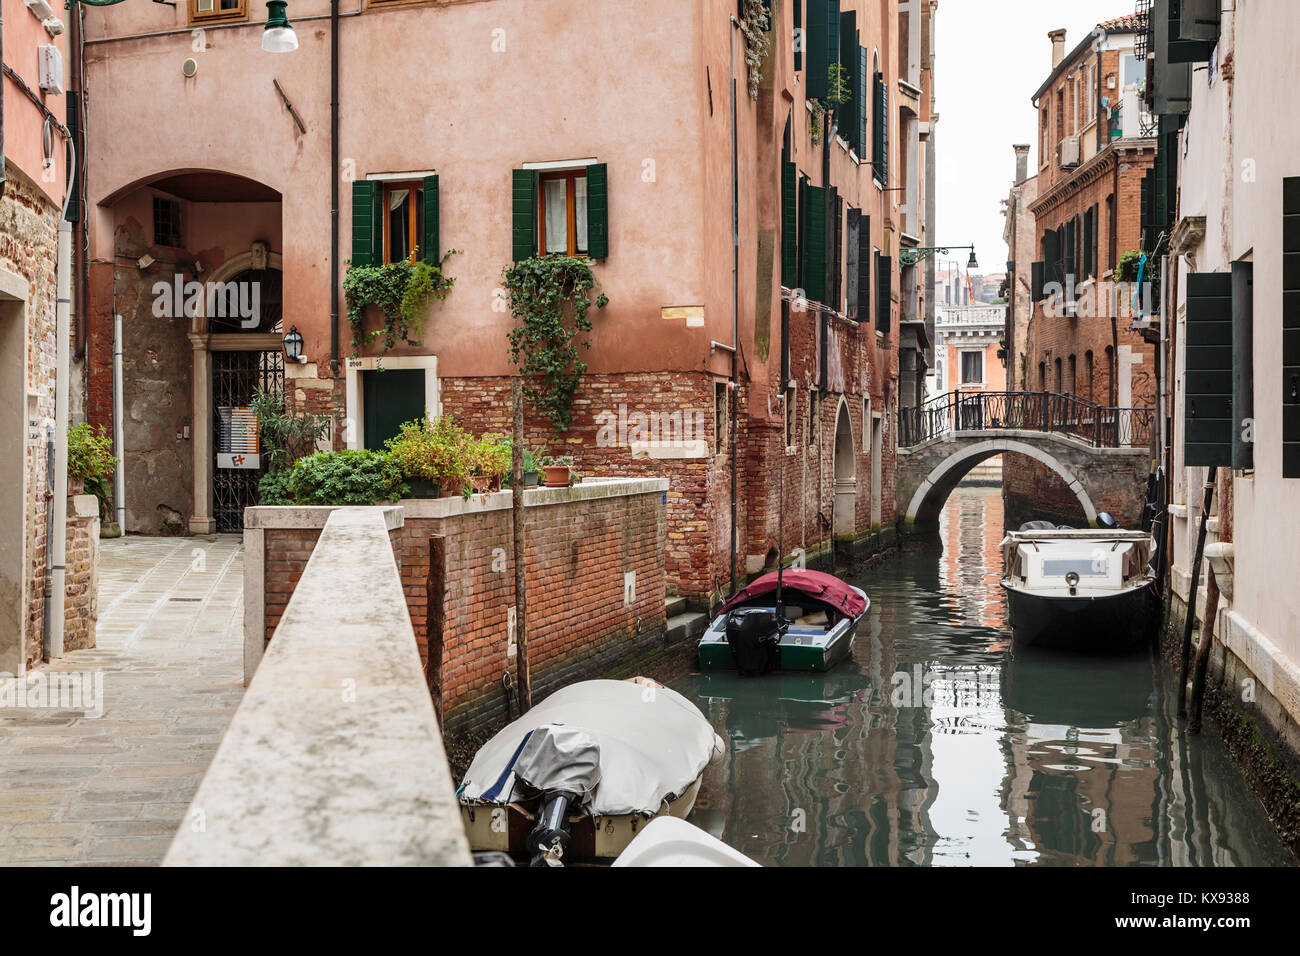 A small canal in Venice, Italy, Europe. - Stock Image